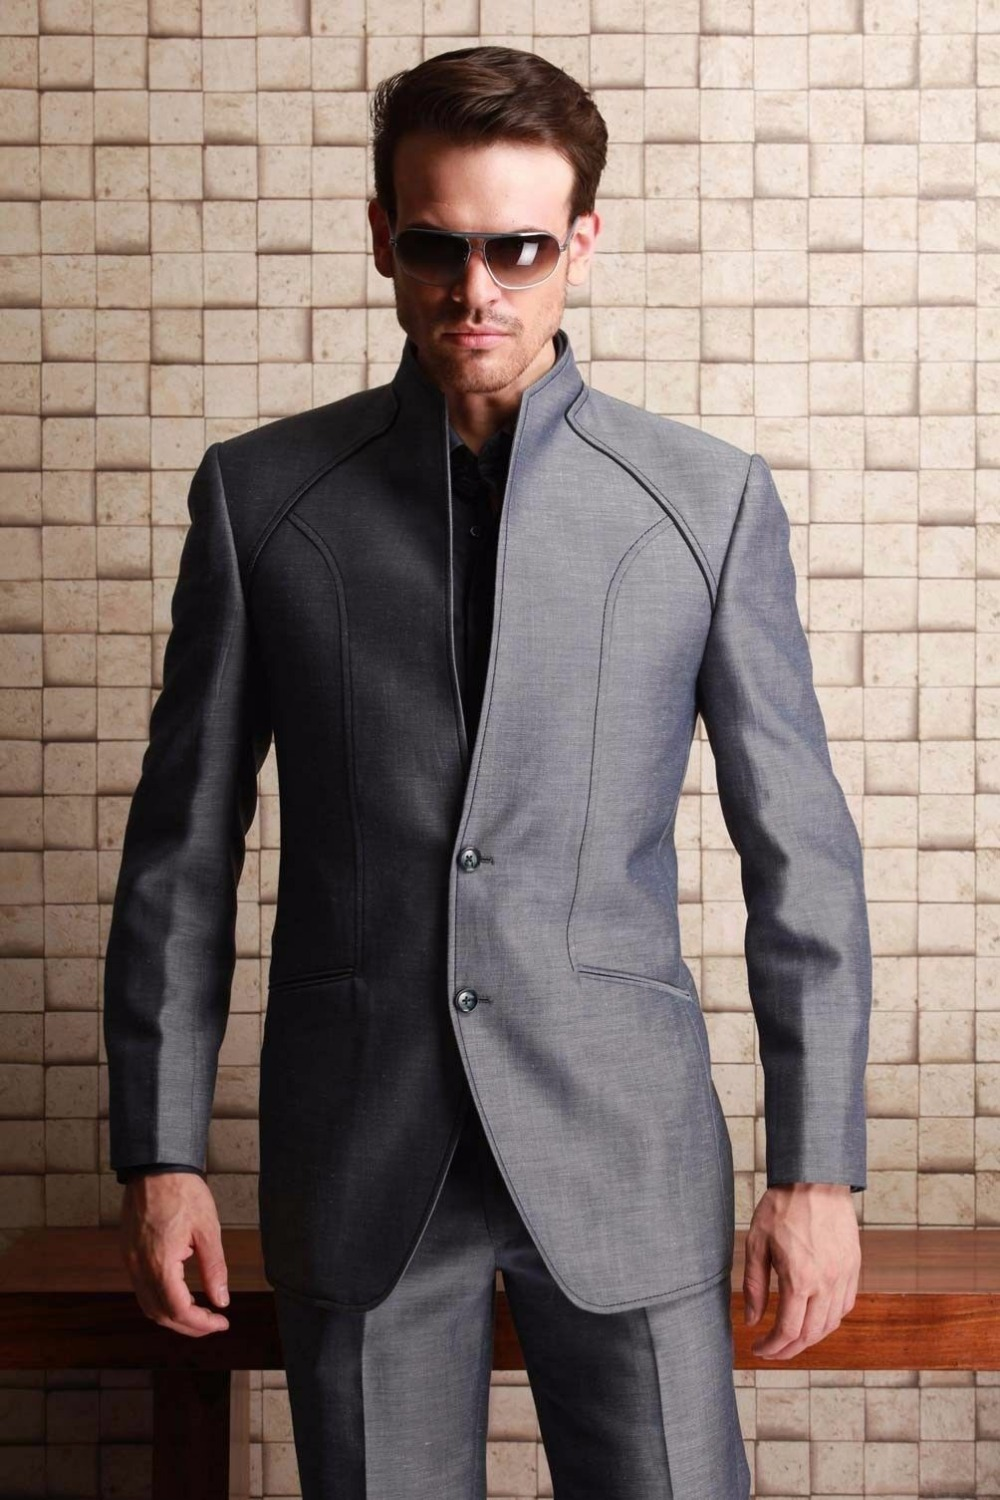 New Design Mens Wedding Suits Fashion Collor Groom Tuxedo Formal Occasion Suit in Suits from Men 39 s Clothing